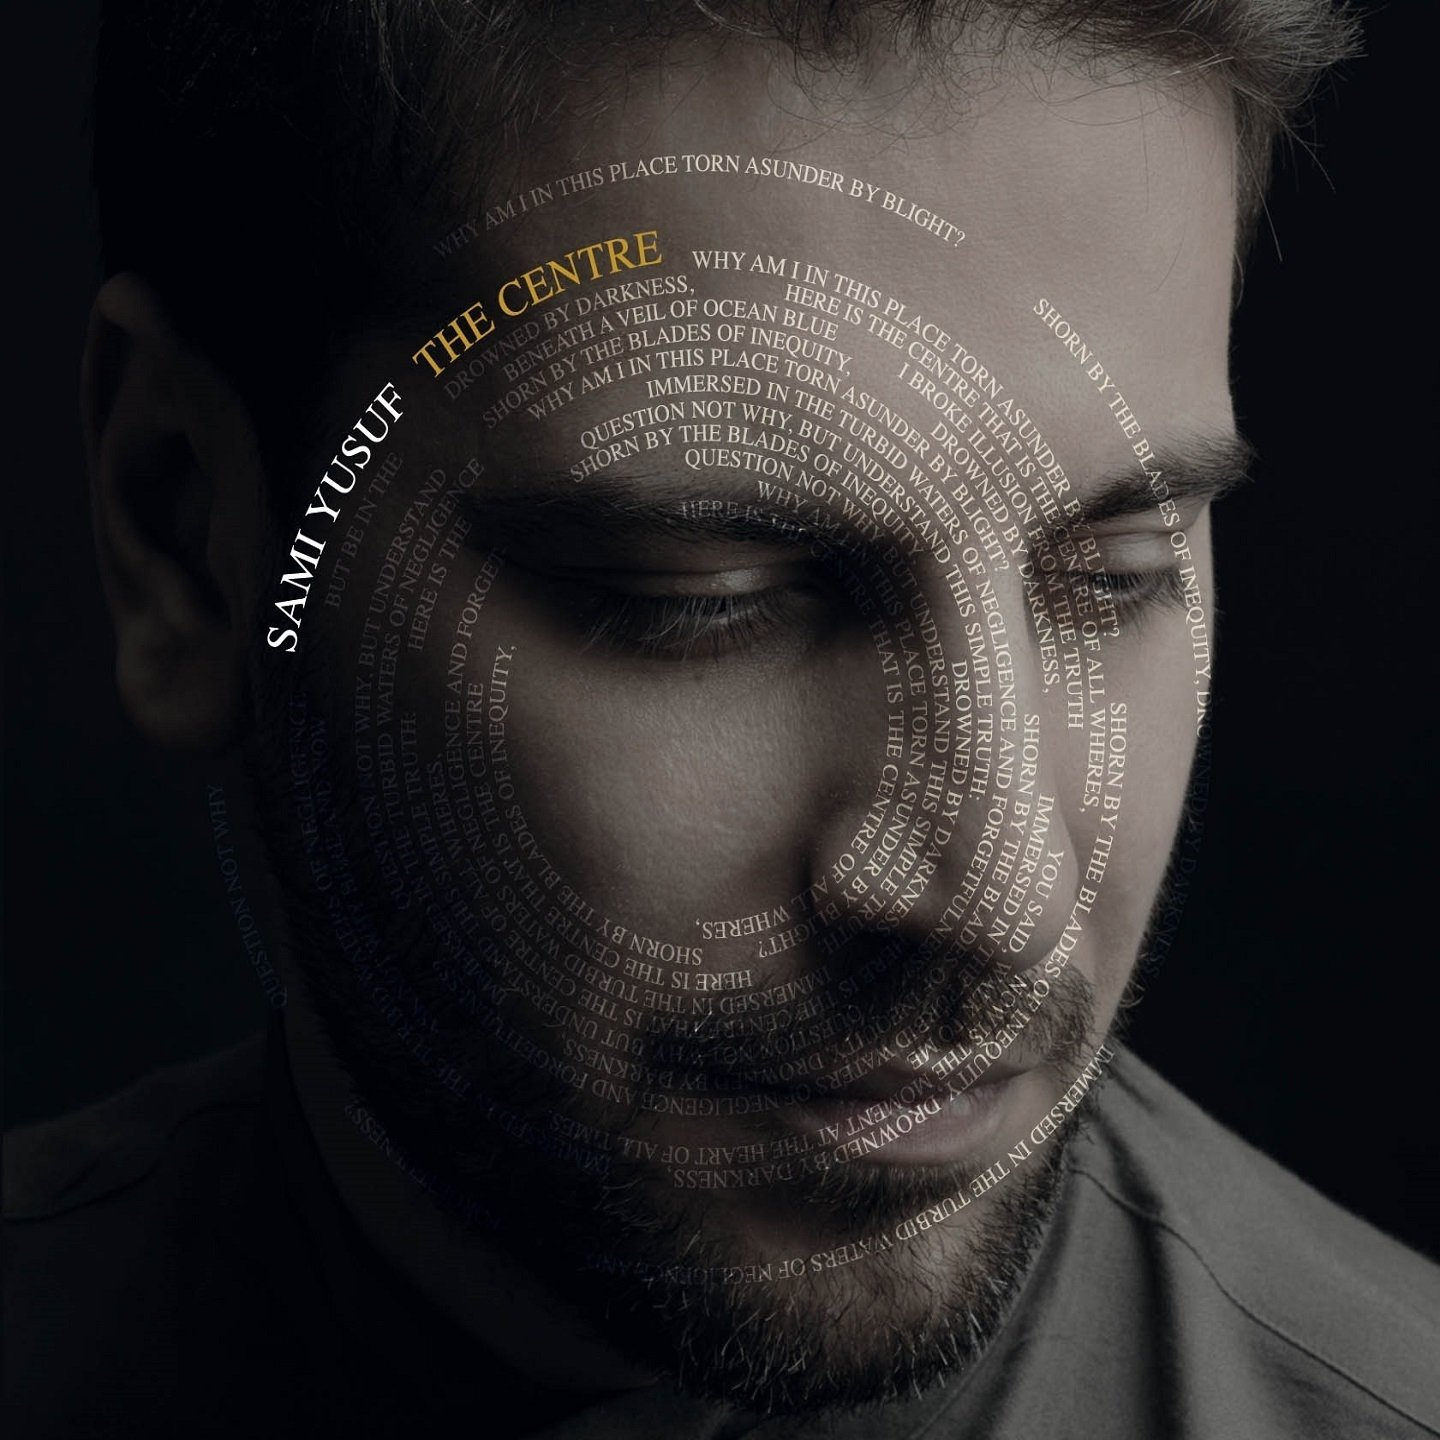 Sami Yusuf The Centre Album